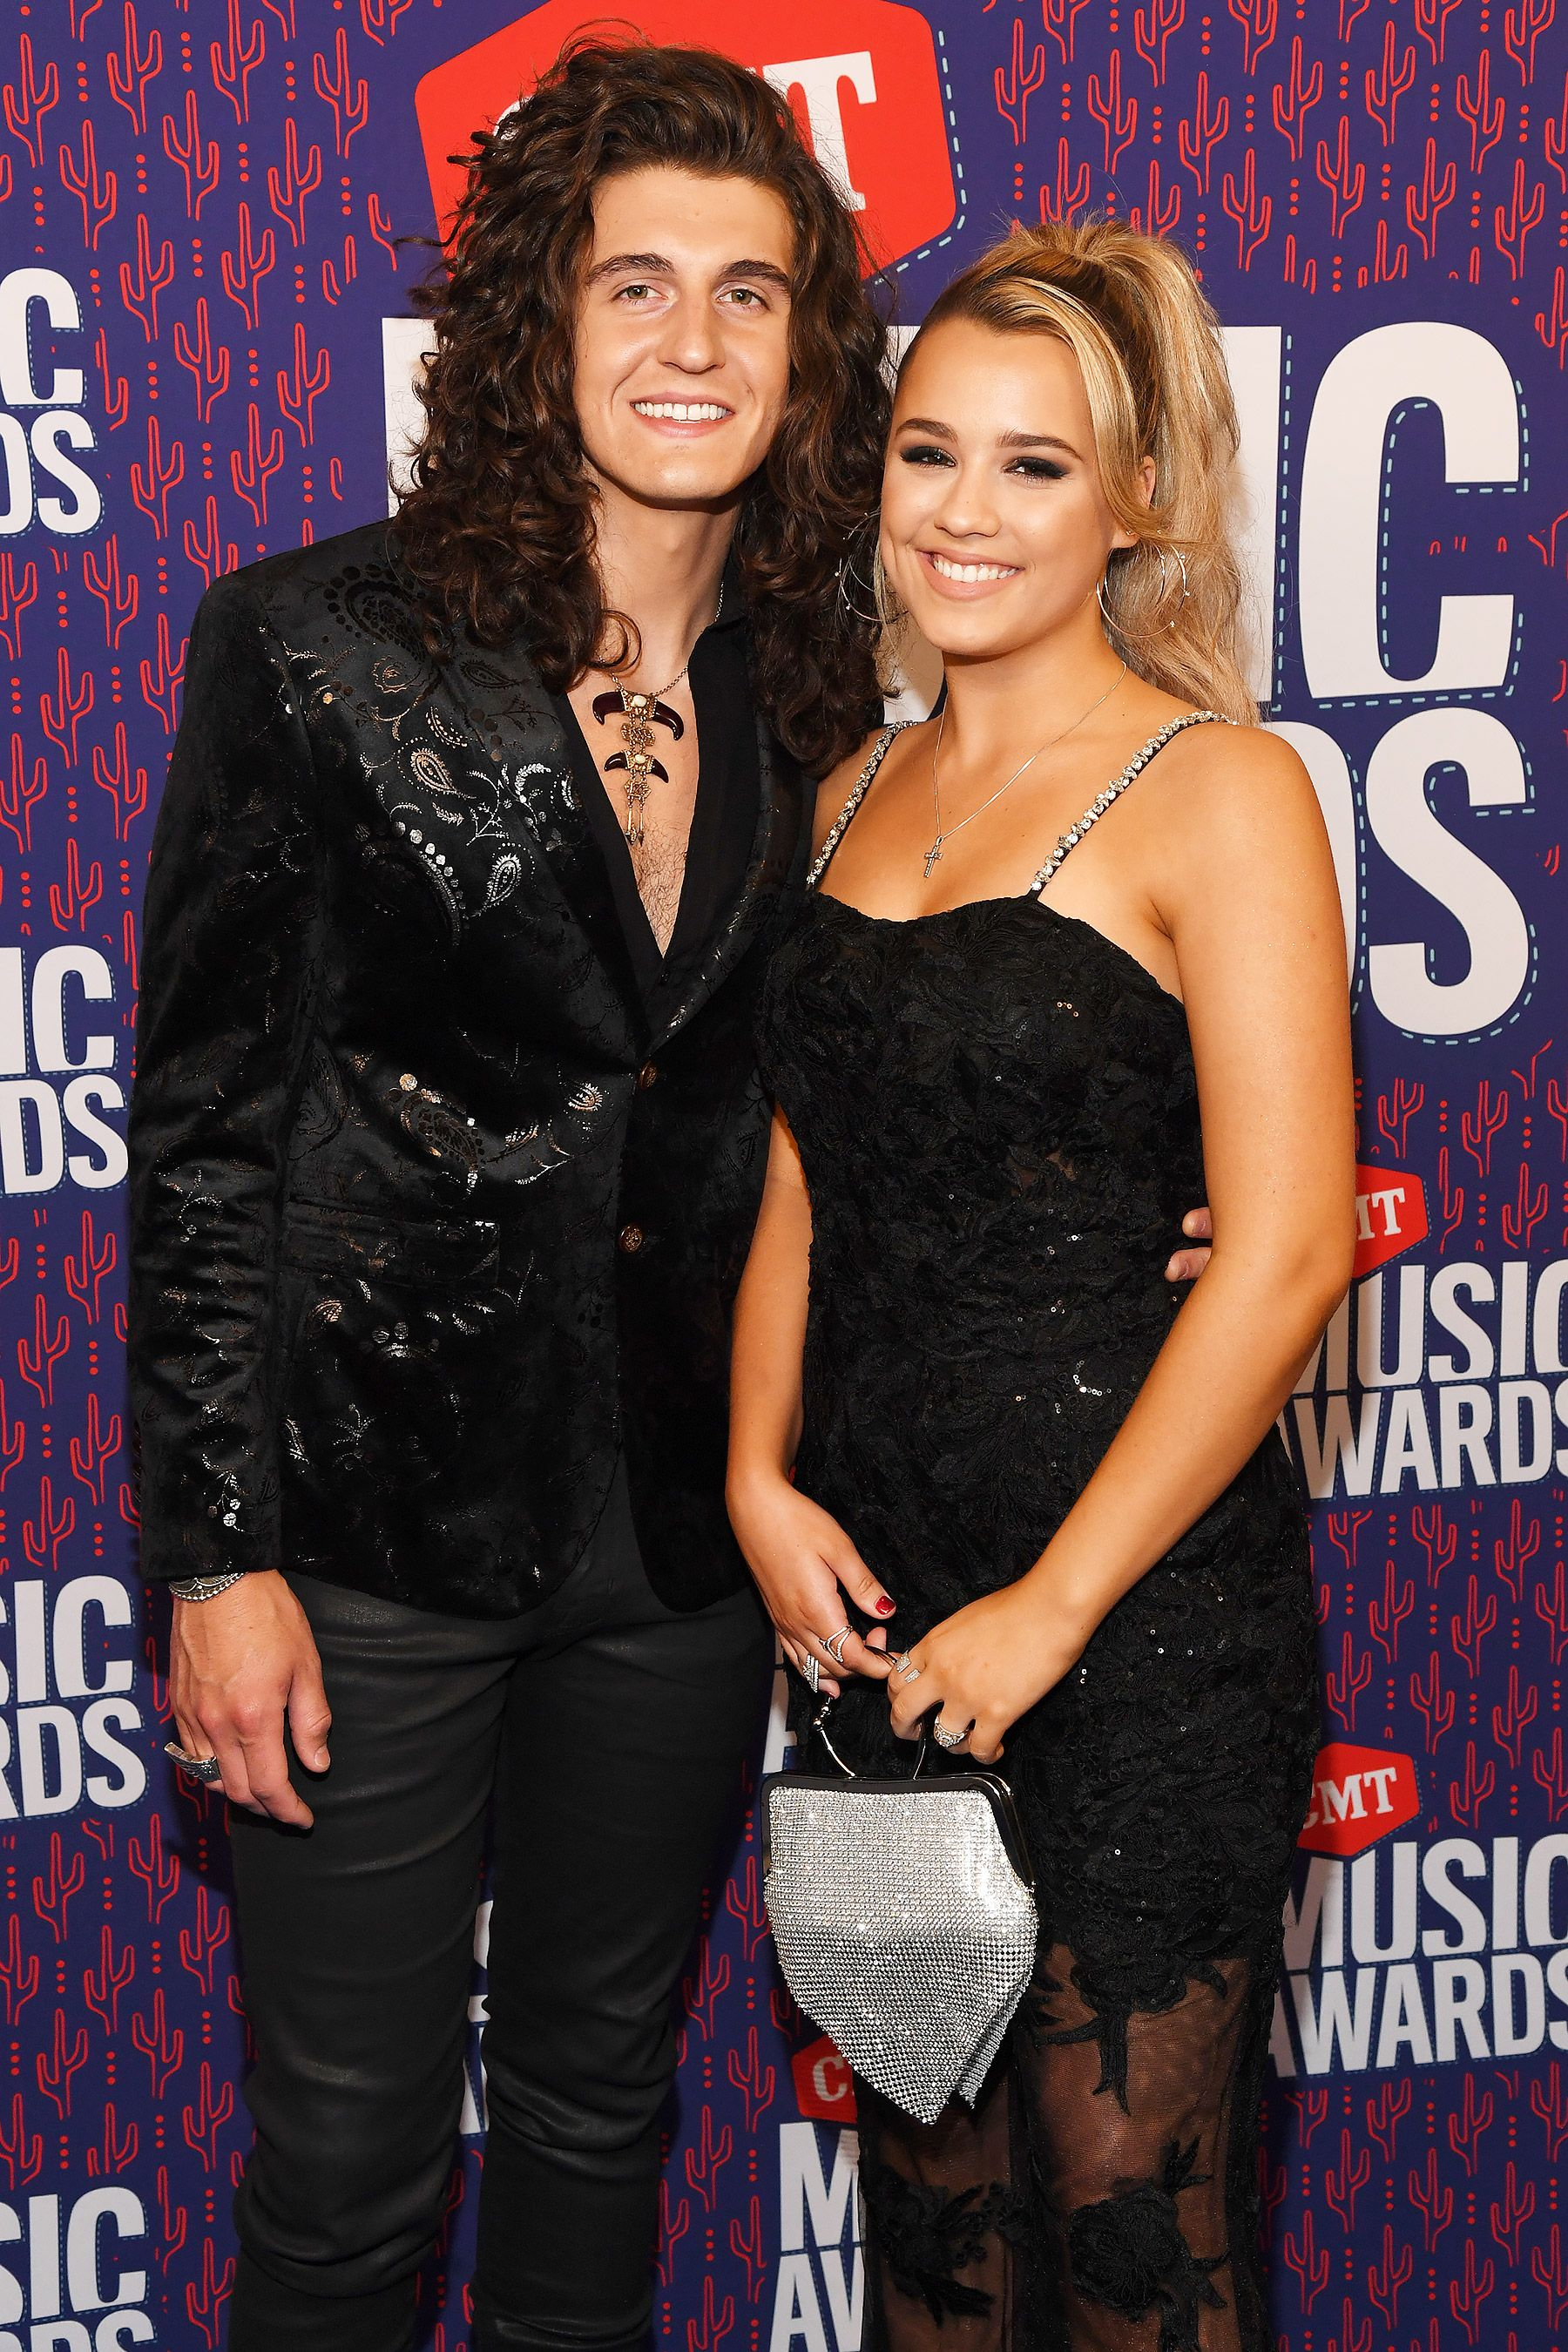 American Idol's Gabby Barrett and Cade Foehner Are Married